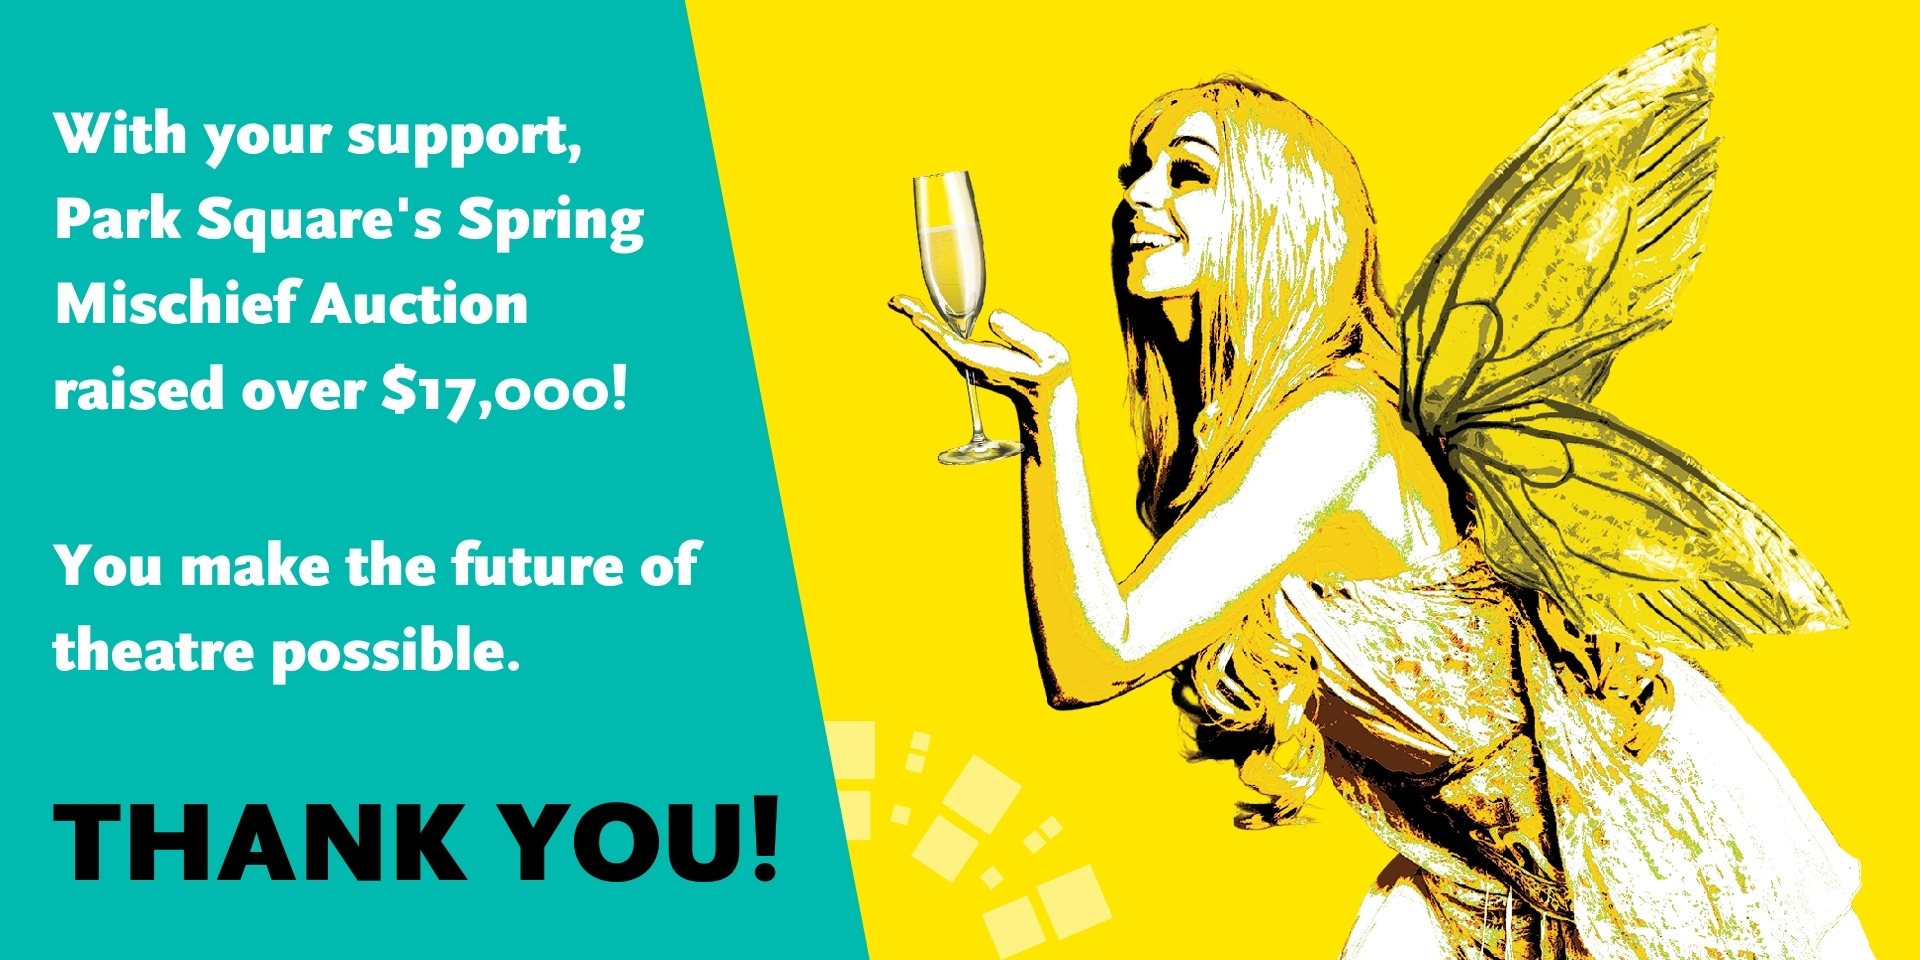 Thank you for your support. The online auction raised 17,000 dollars! Yellow and turquoise grpahic with line drawing of a fairy holding a champagne glass